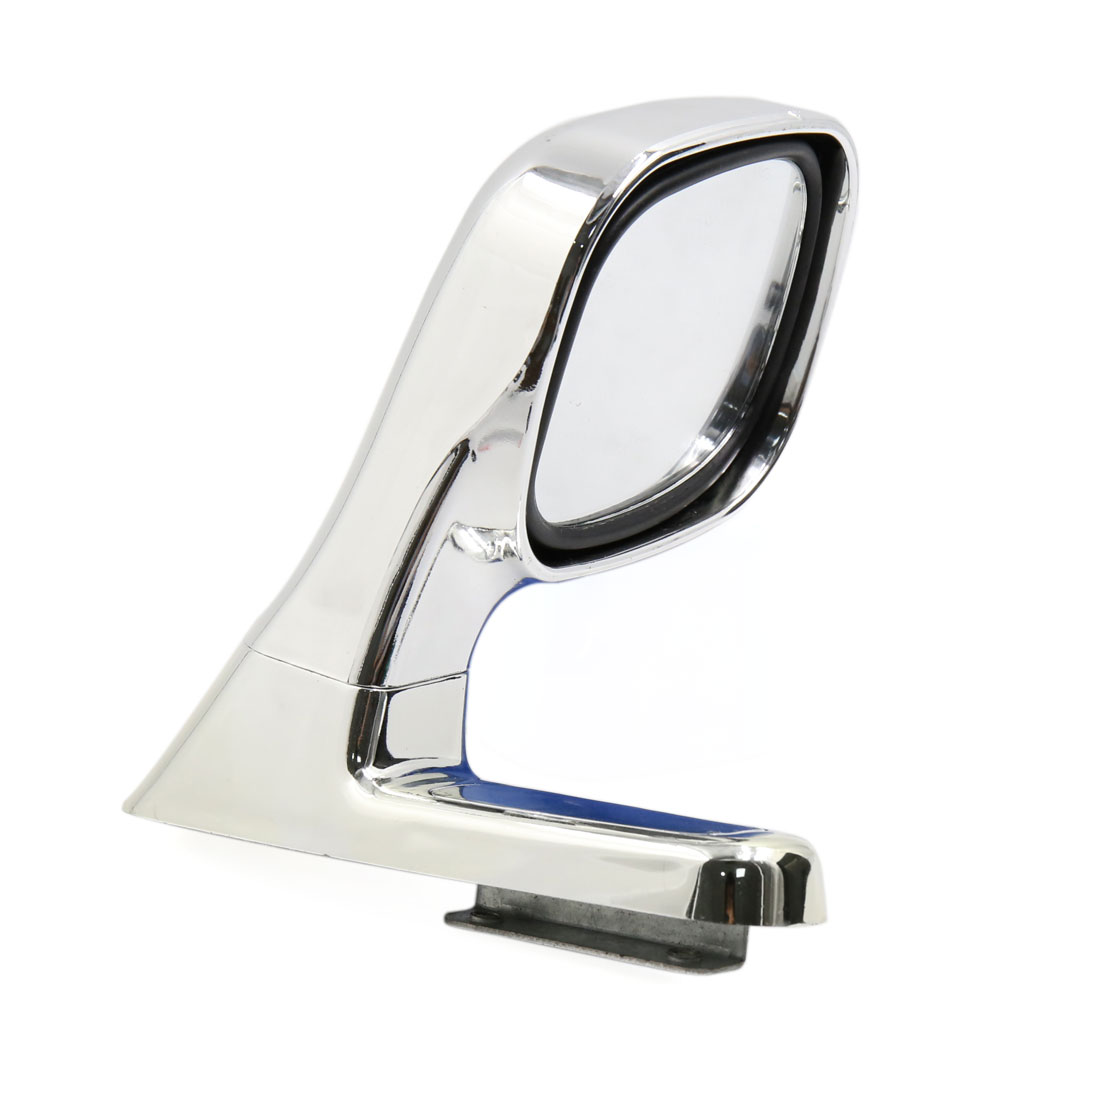 Silver Tone Universal Auto Car Adjustable Right Side Rearview Auxiliary Mirror